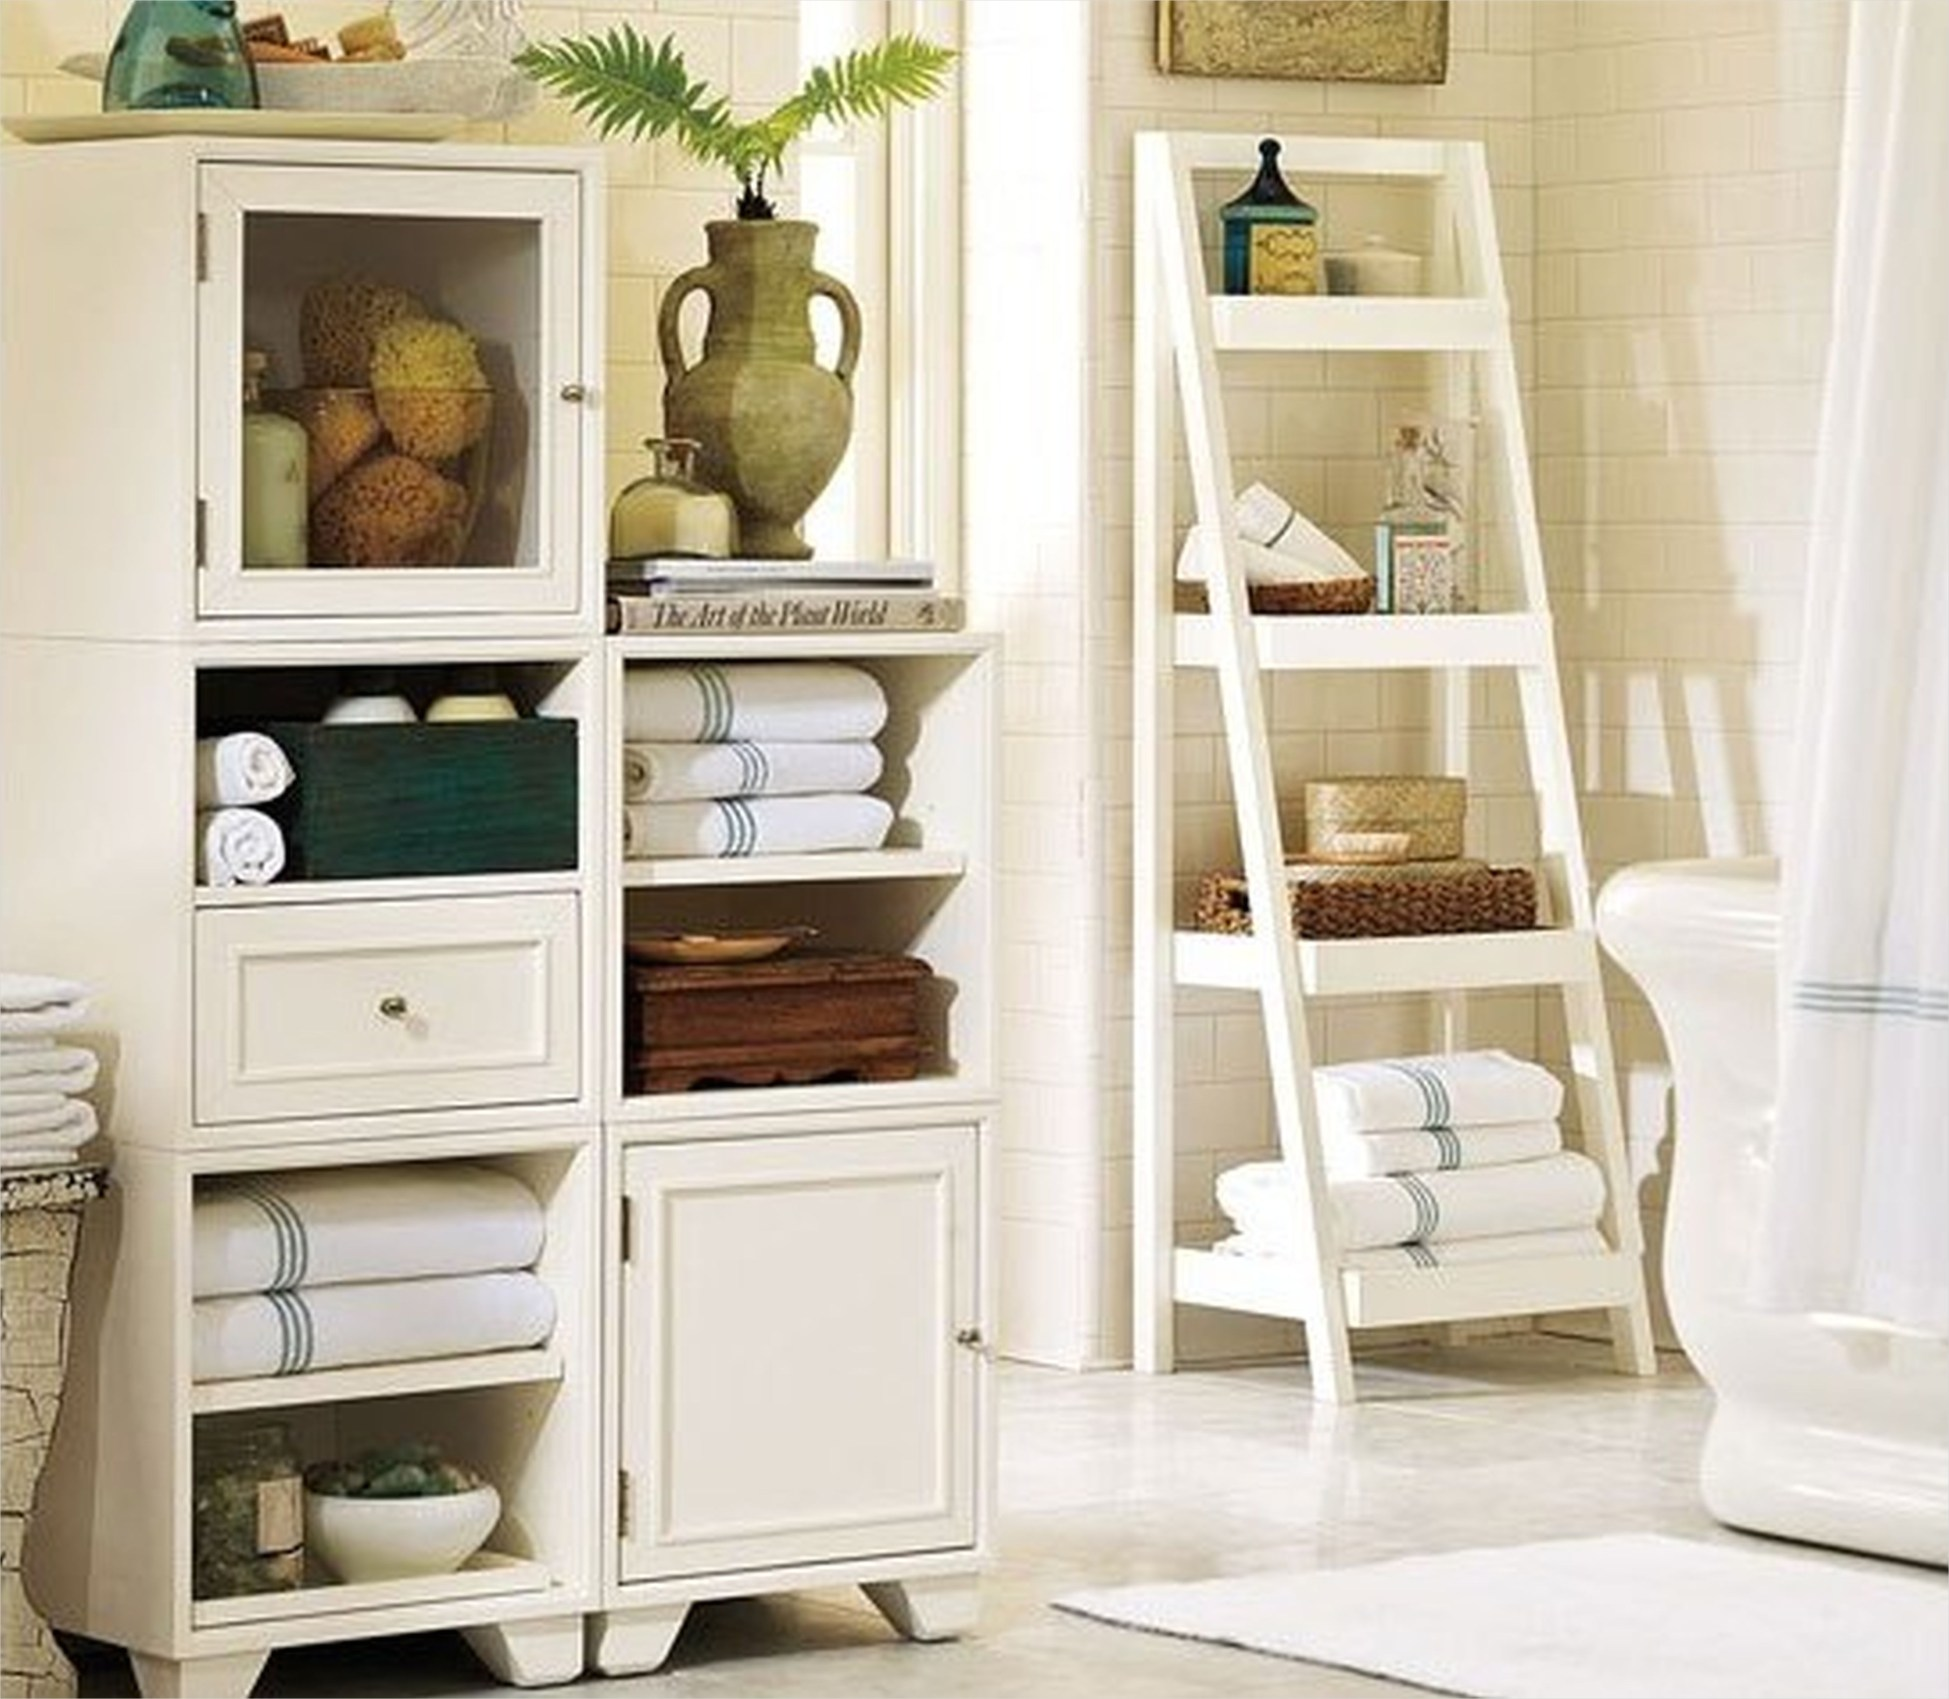 Bathroom Shelves Decorating Ideas 21 Add Glamour with Small Vintage Bathroom Ideas 9